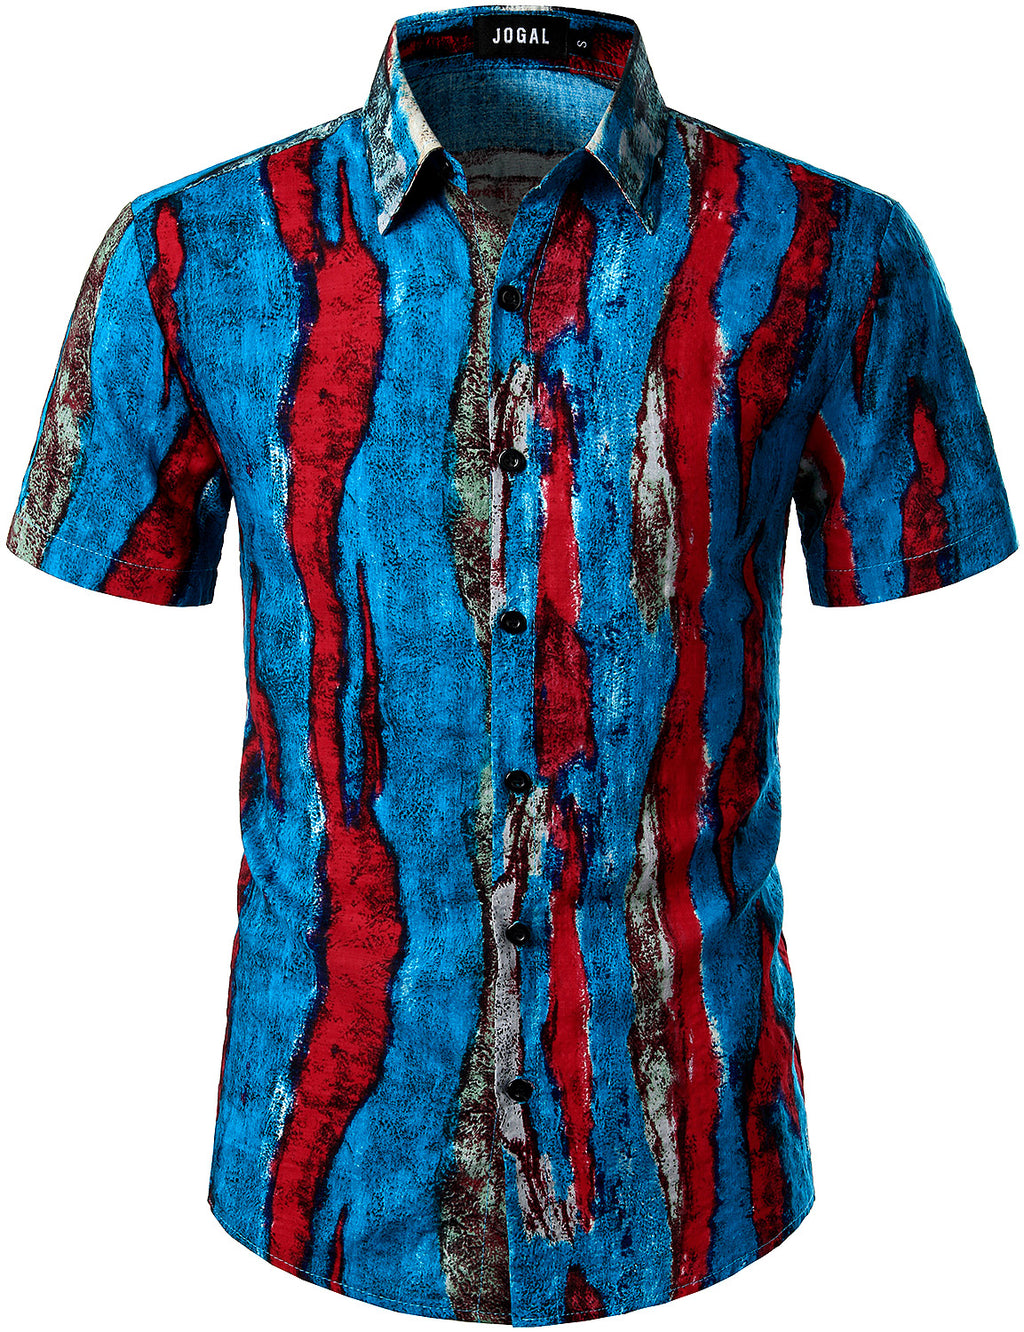 JOGAL Men's Casual Stripe Short Sleeve Button Down Shirts (RedBlue)